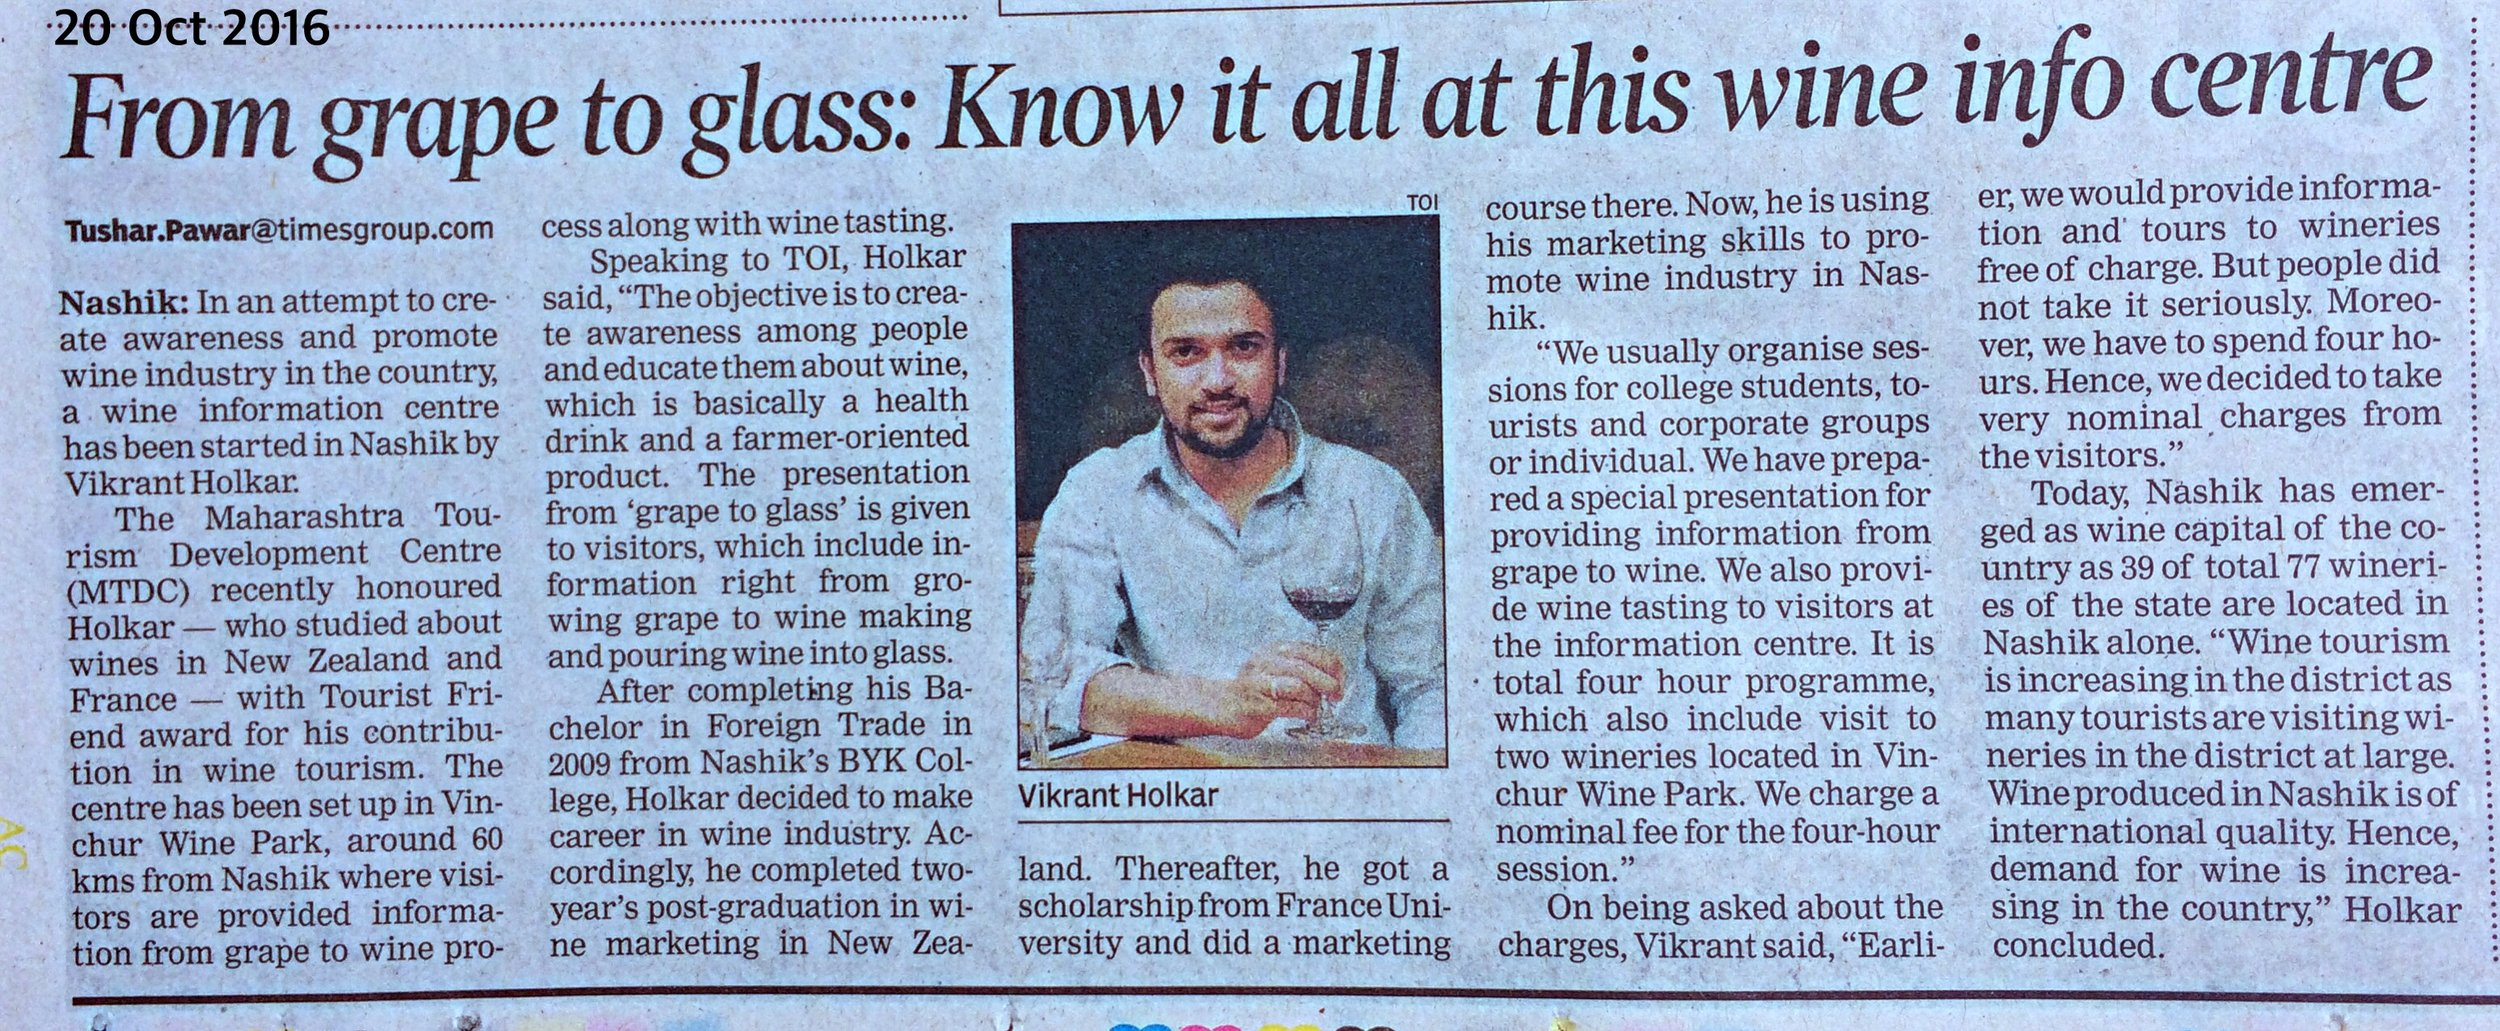 Times of India news on Wine Information Center by Red Grapes at Vinchur wine park - Vikrant Holkar